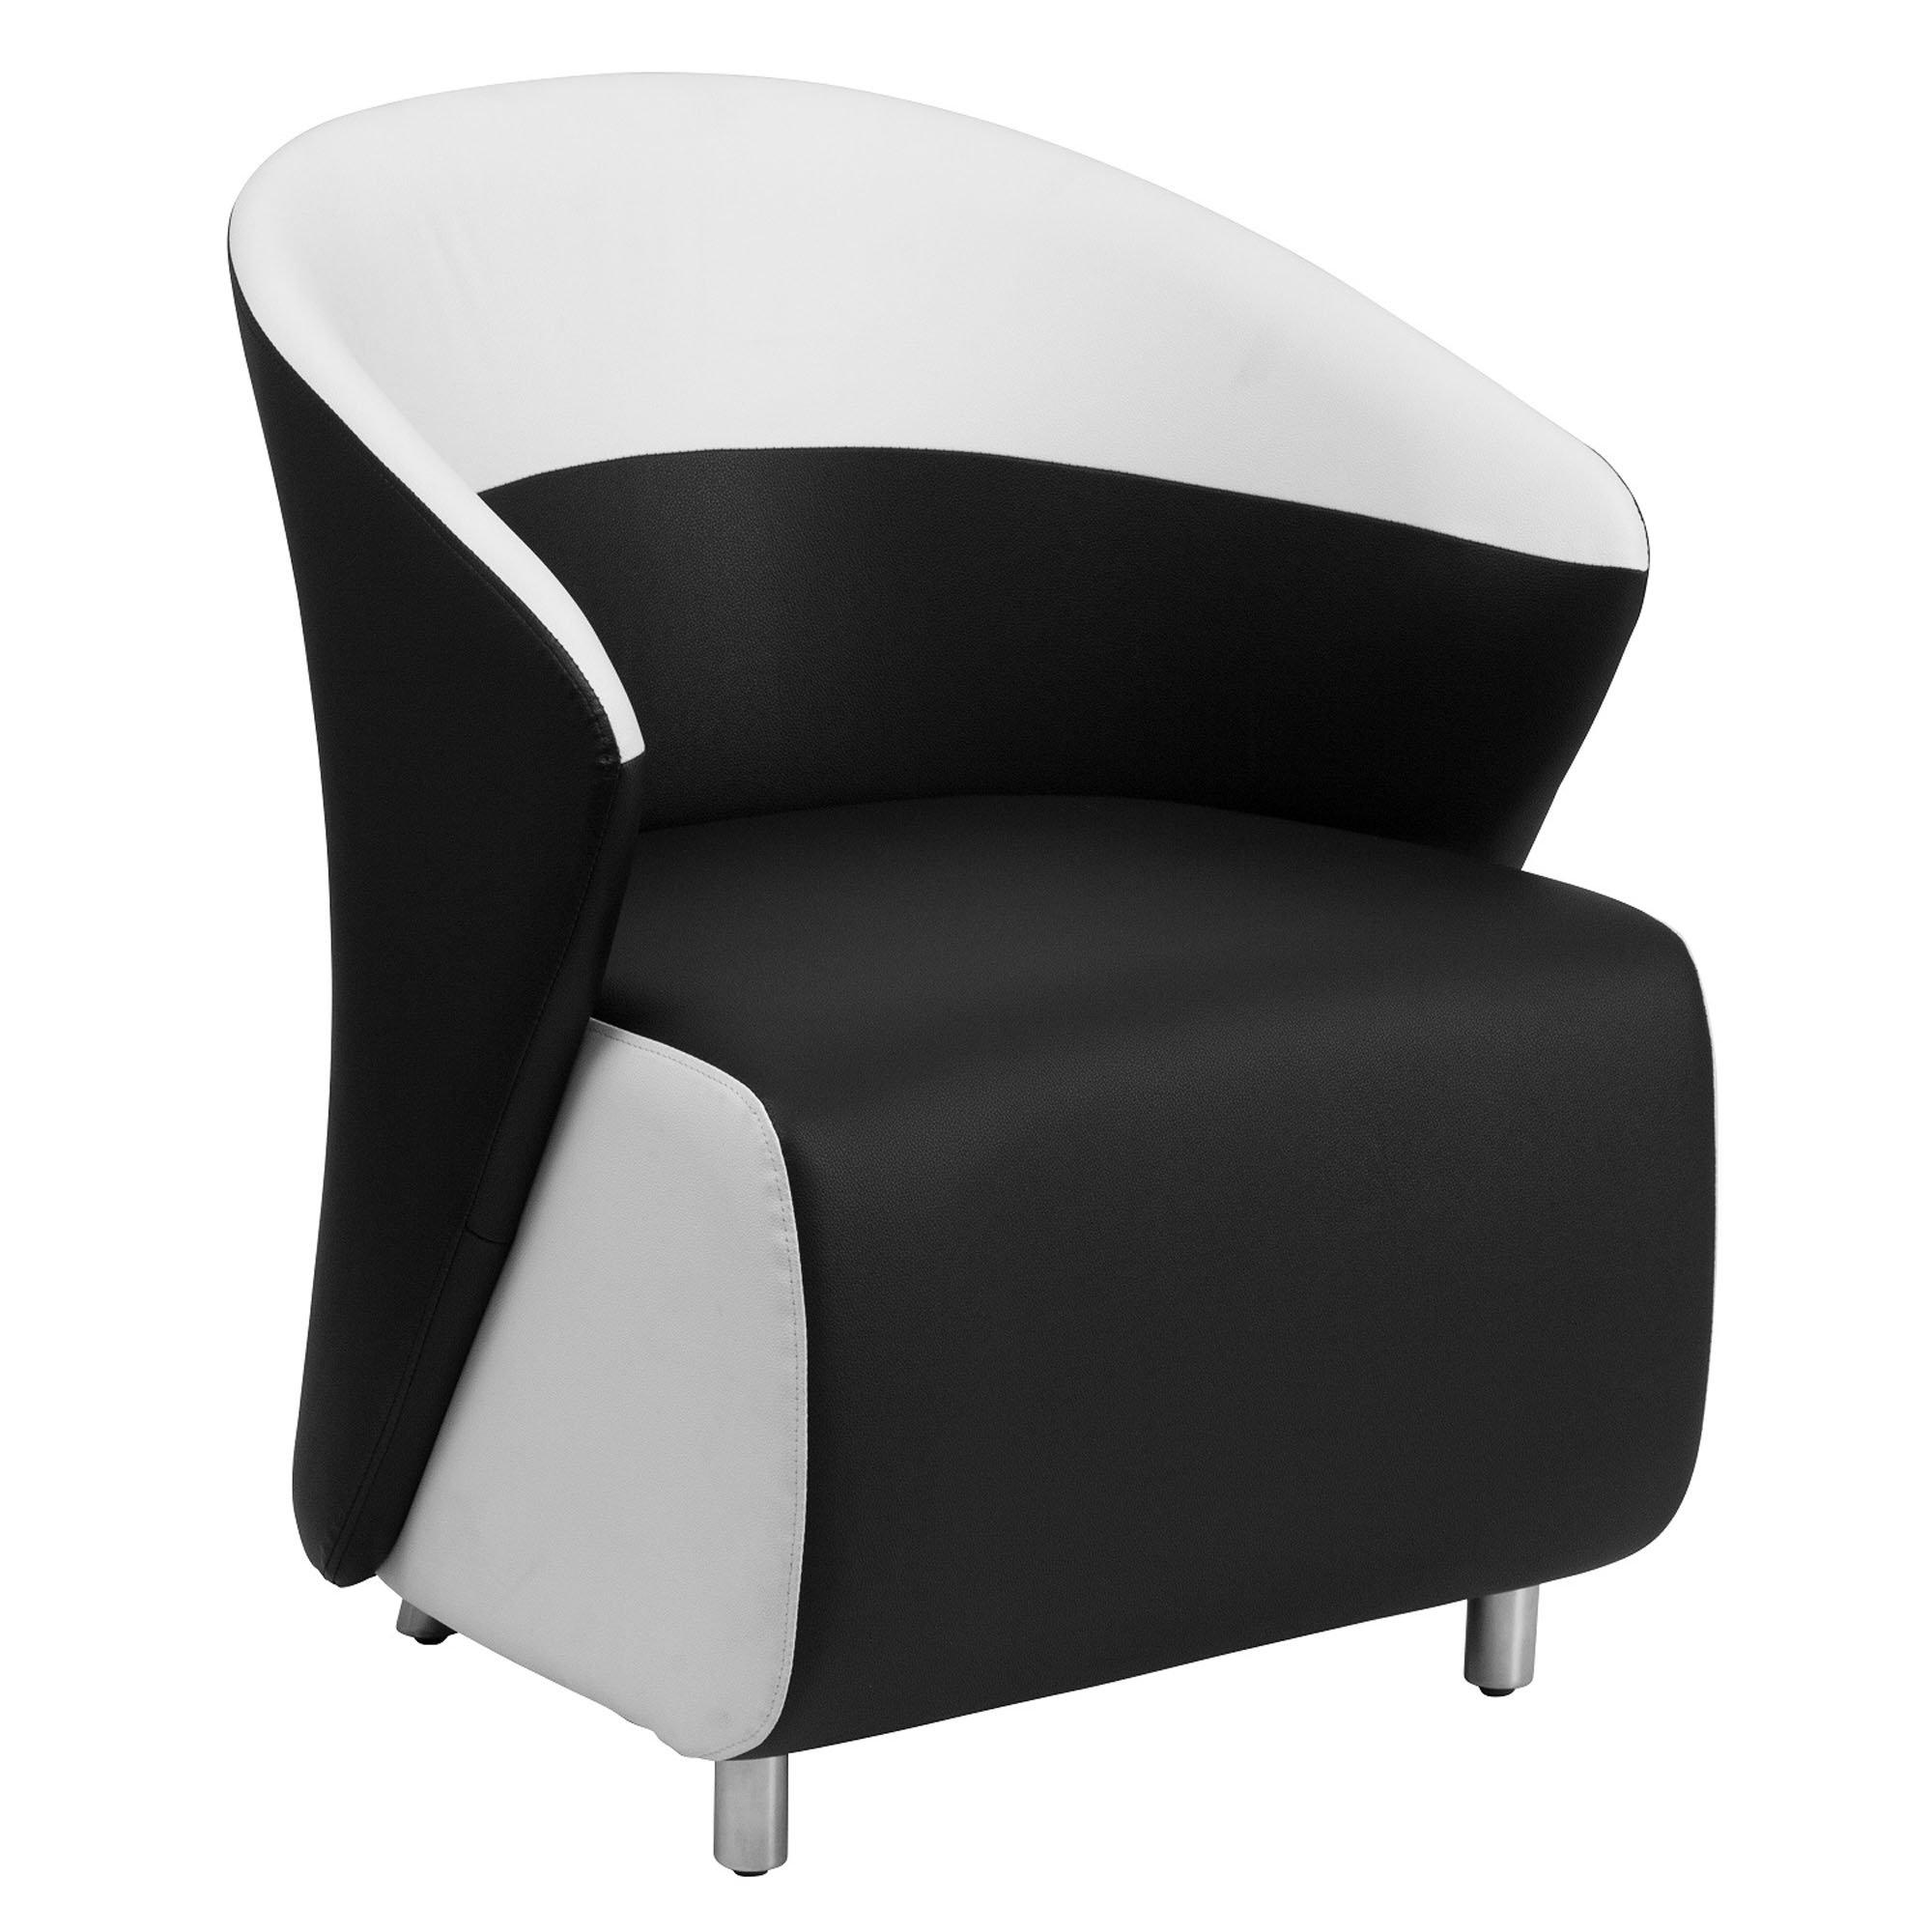 Nextgen Curved Barrel Back Lounge Chair, Black LeatherSoft  Upholstery with Melrose White Detailing